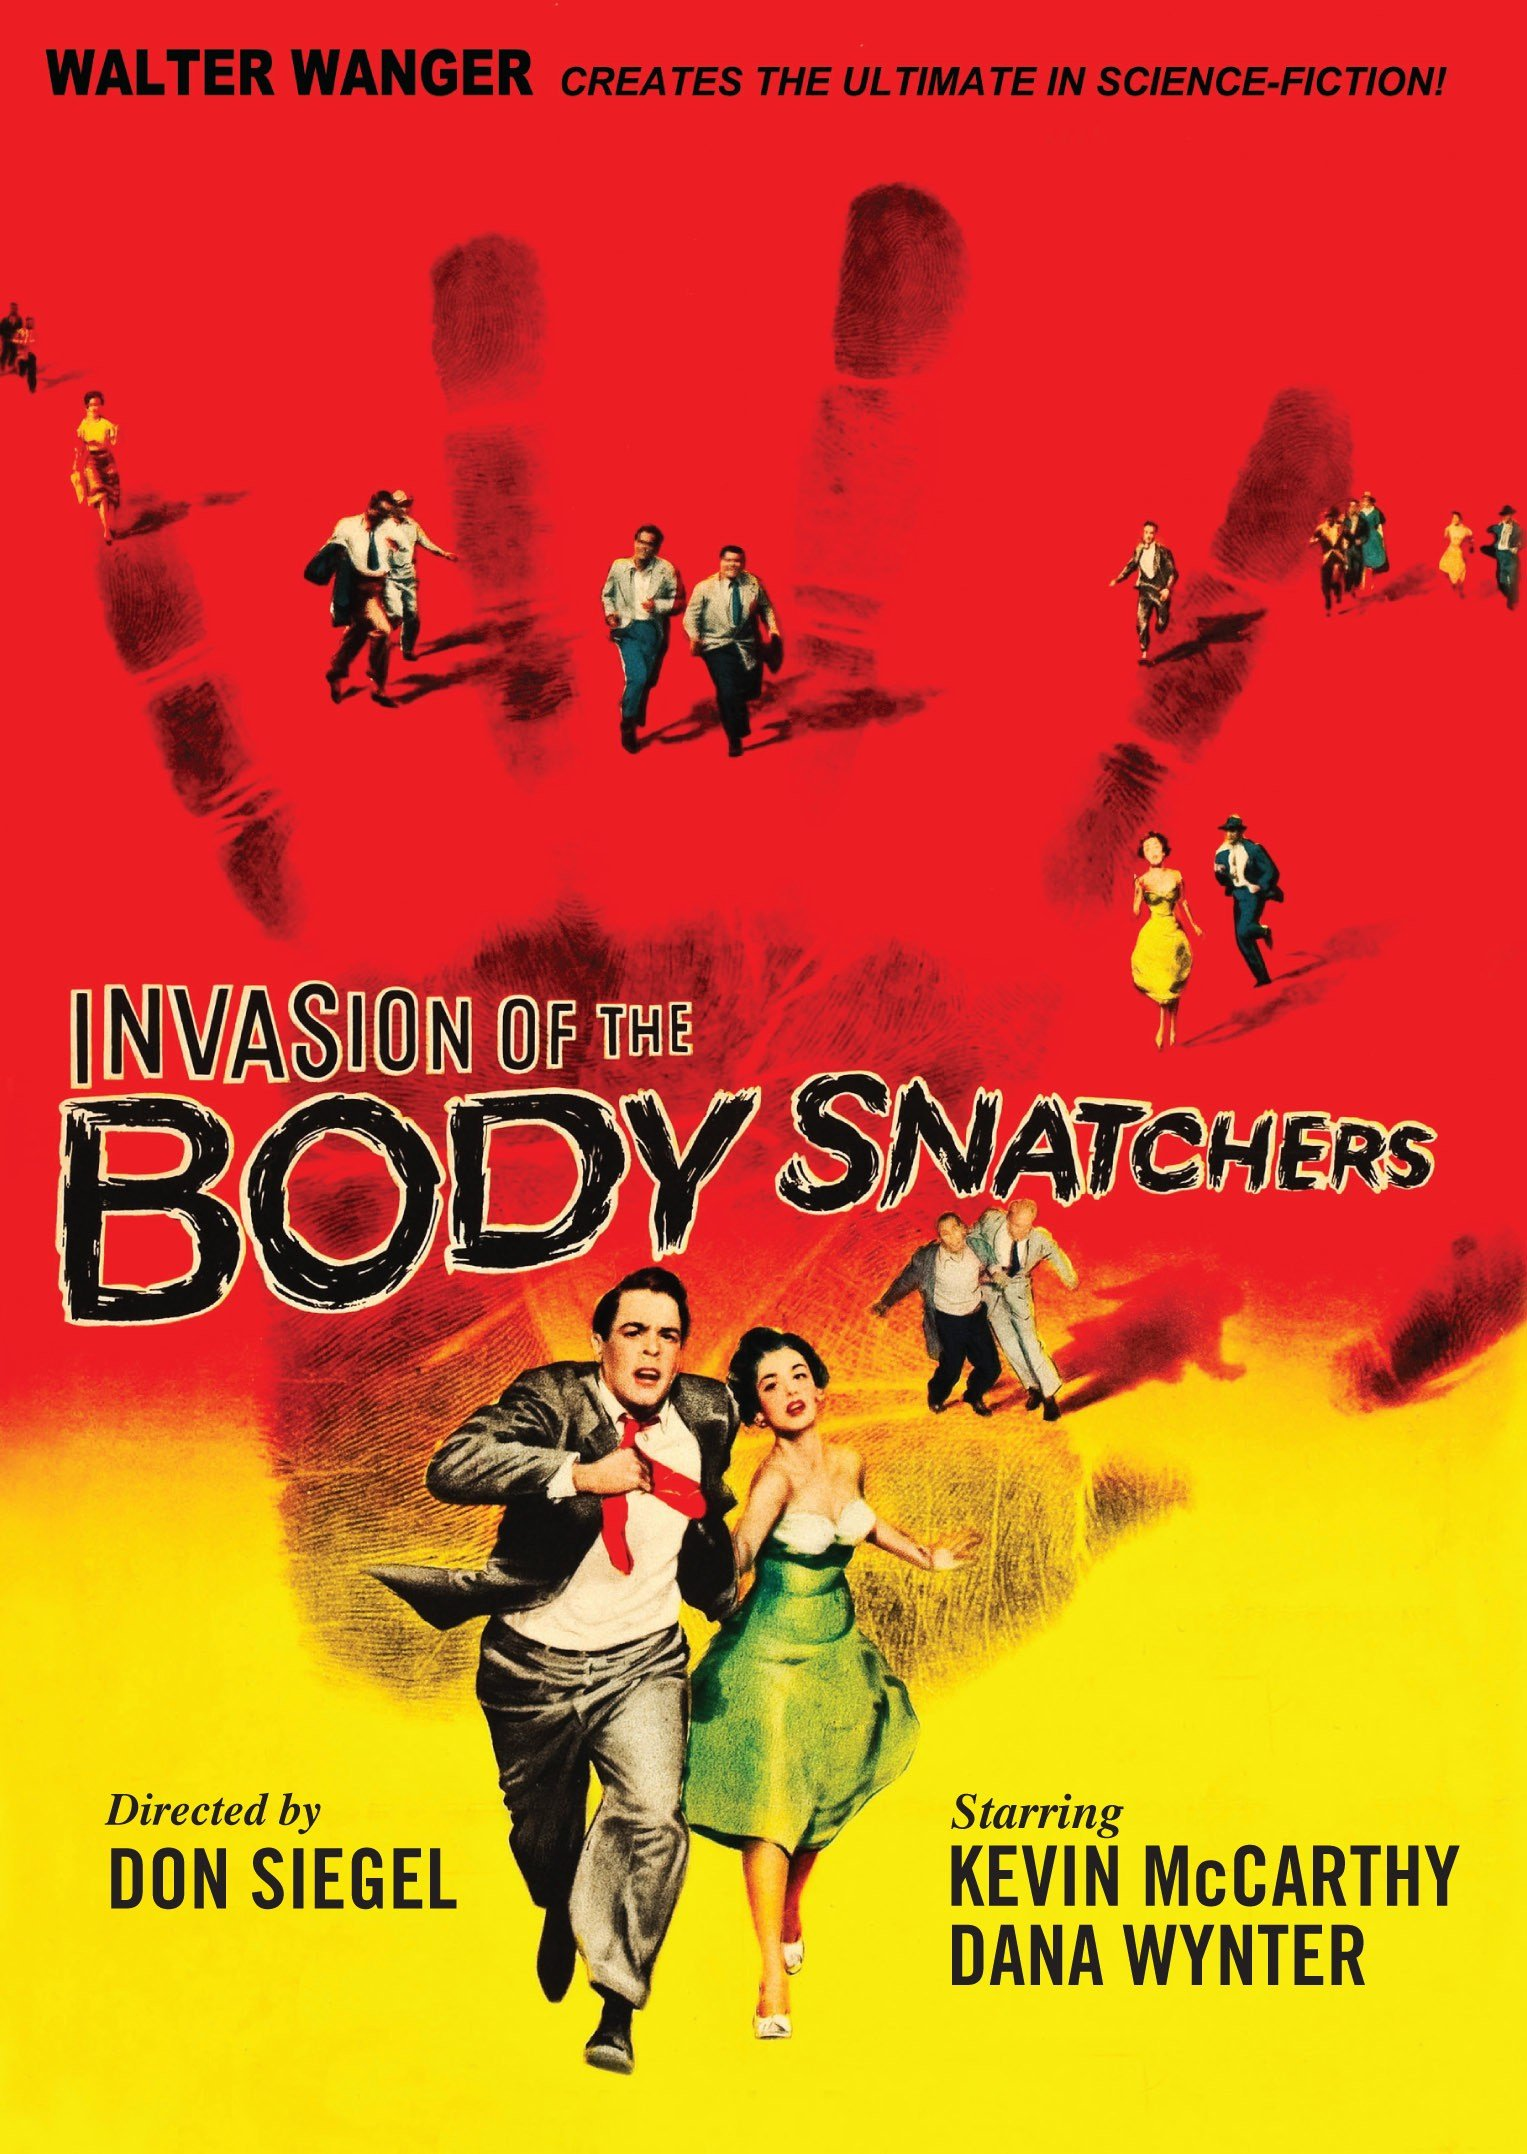 Invasion of the Body Snatchers by Olive Films